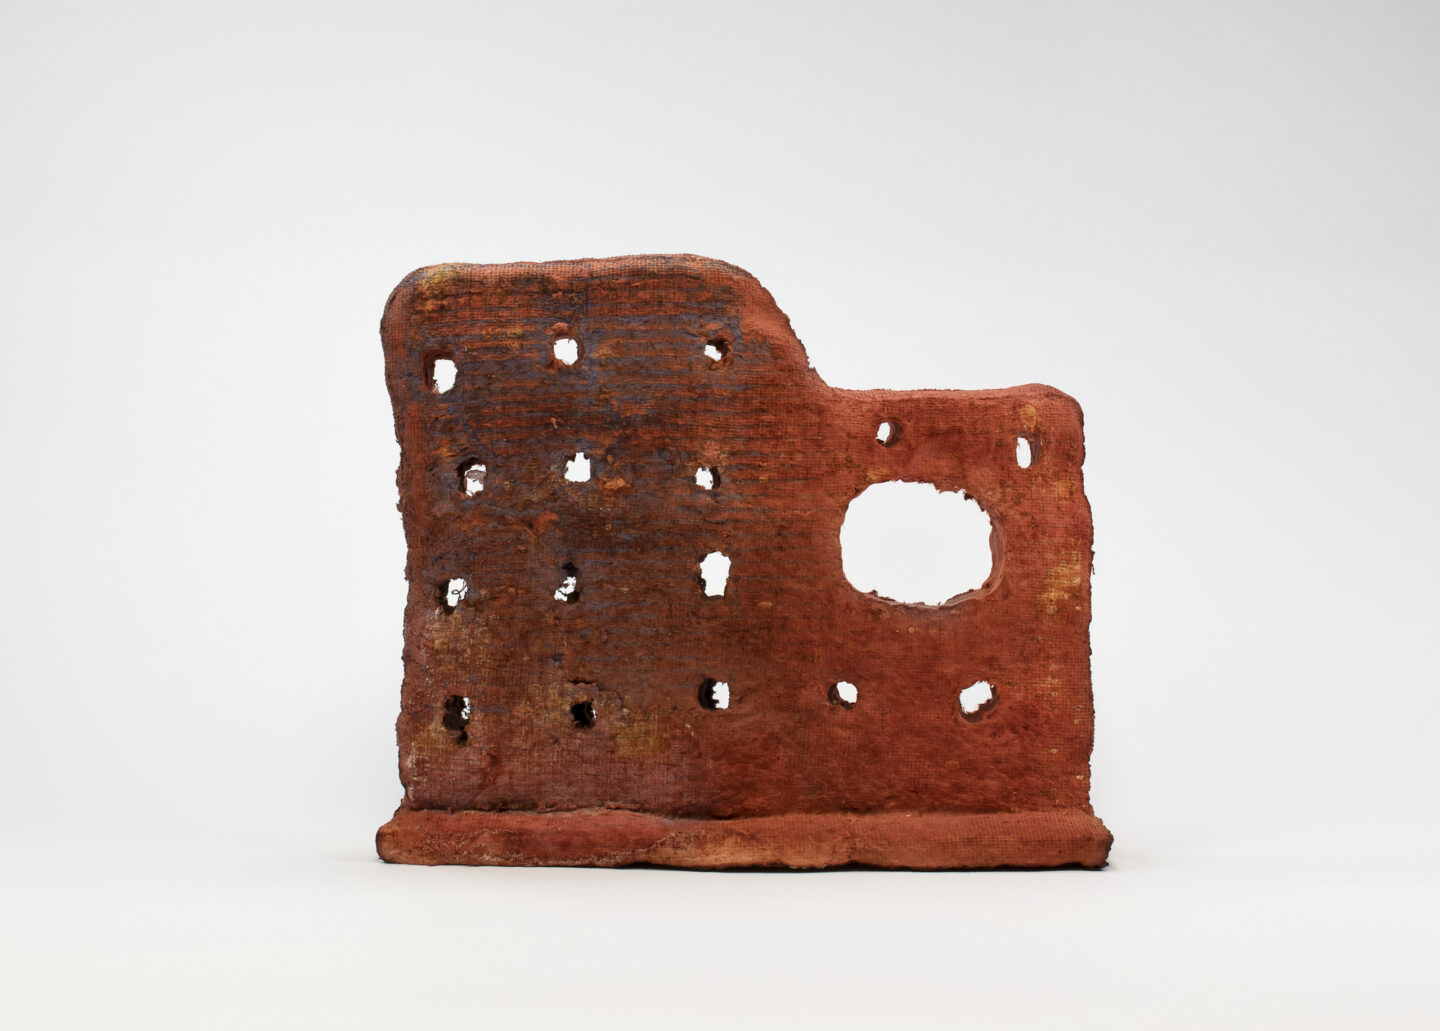 An irregular shaped red abstract sculpture that looks like the side wall of an old building structure. Rows of holes and one bigger void space cover the surface of the grainy, rough sculpture.